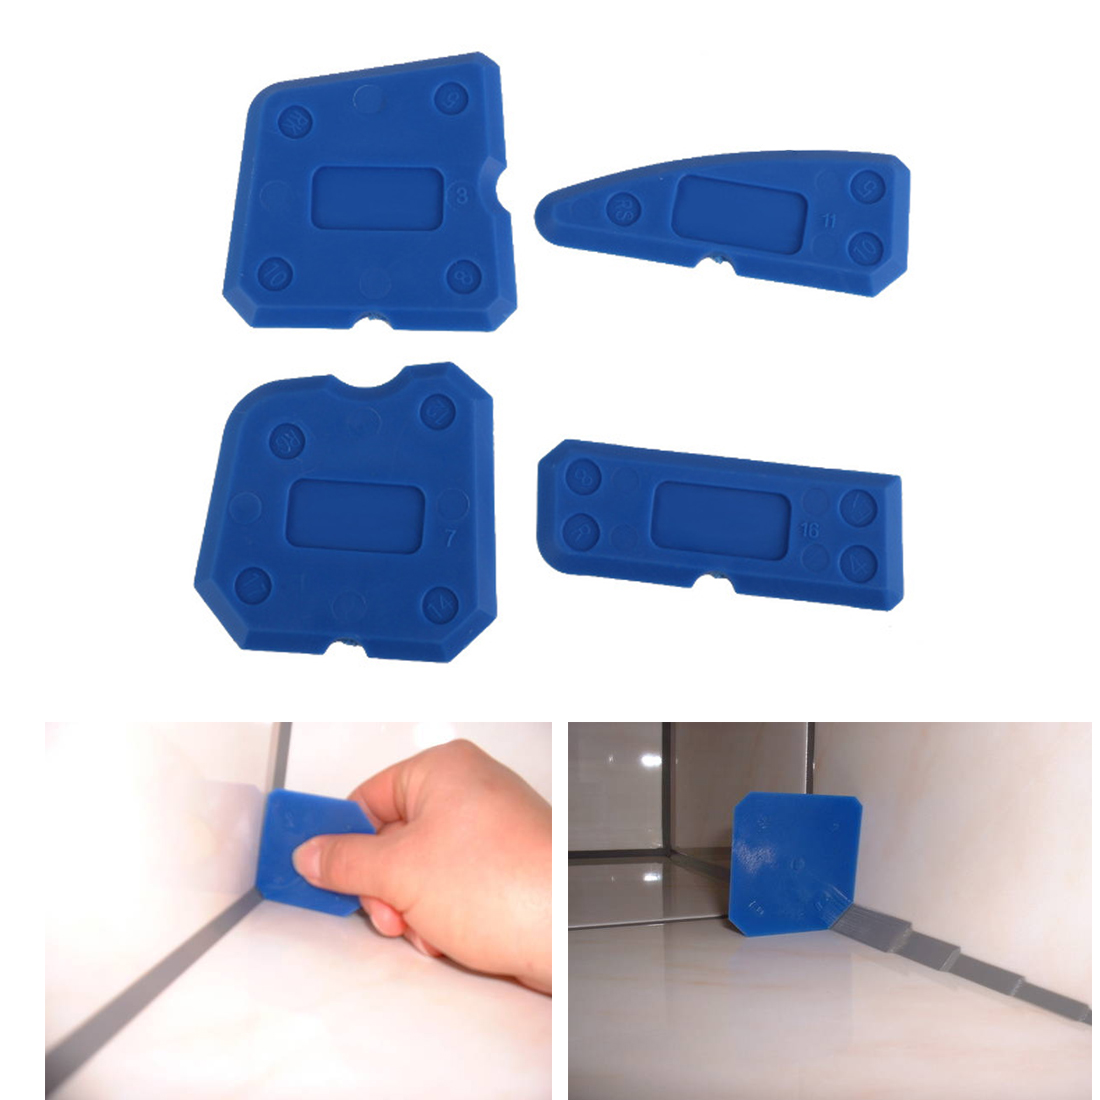 4pcs/set Hot Caulking Tool Kit Joint Sealant Silicone Grout Remover Scraper Blue Hand Tools Set Scraper Tools